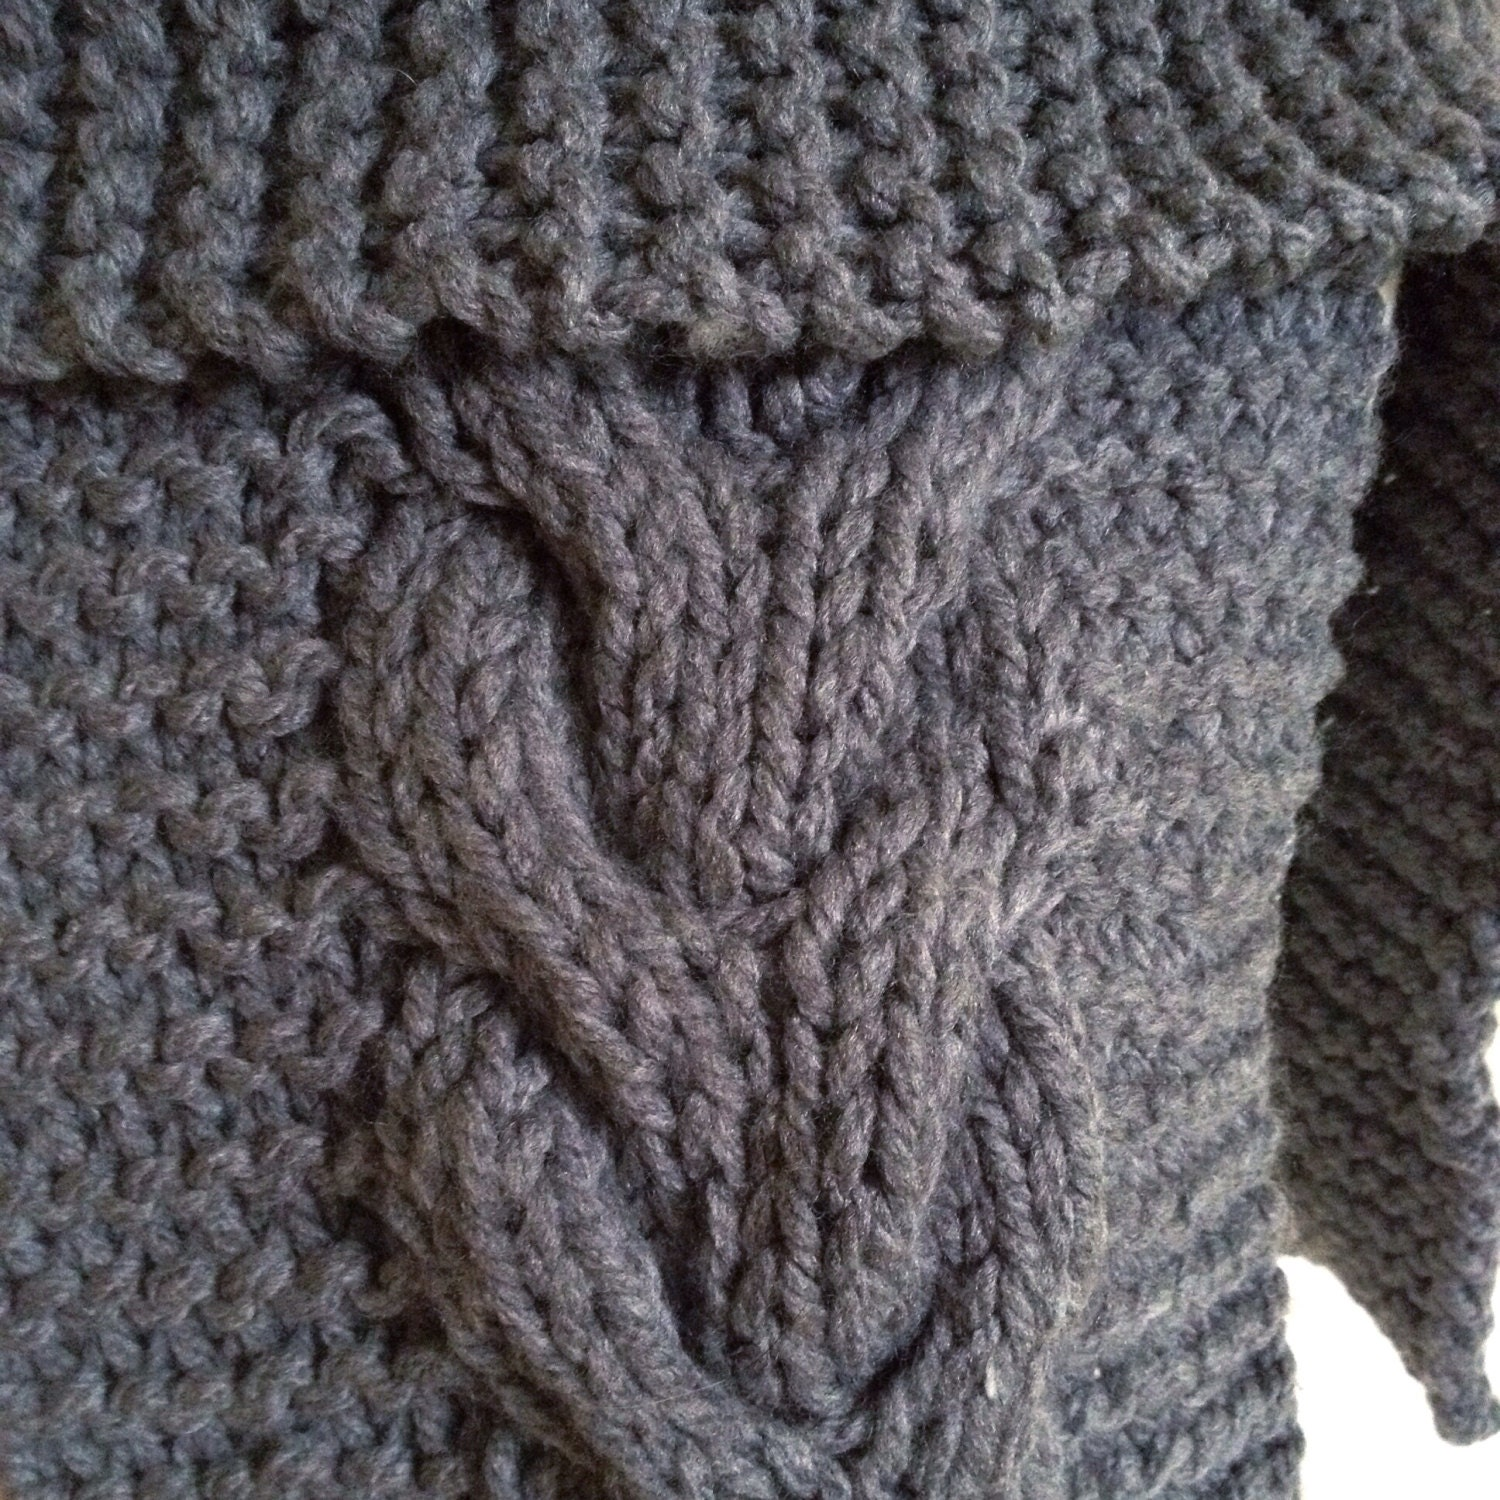 Cable knit scarf pattern cable scarf pattern chunky knit scarf cable knit scarf pattern cable scarf pattern chunky knit scarf pattern knit cable scarf pattern chunky cable scarf pattern bankloansurffo Image collections